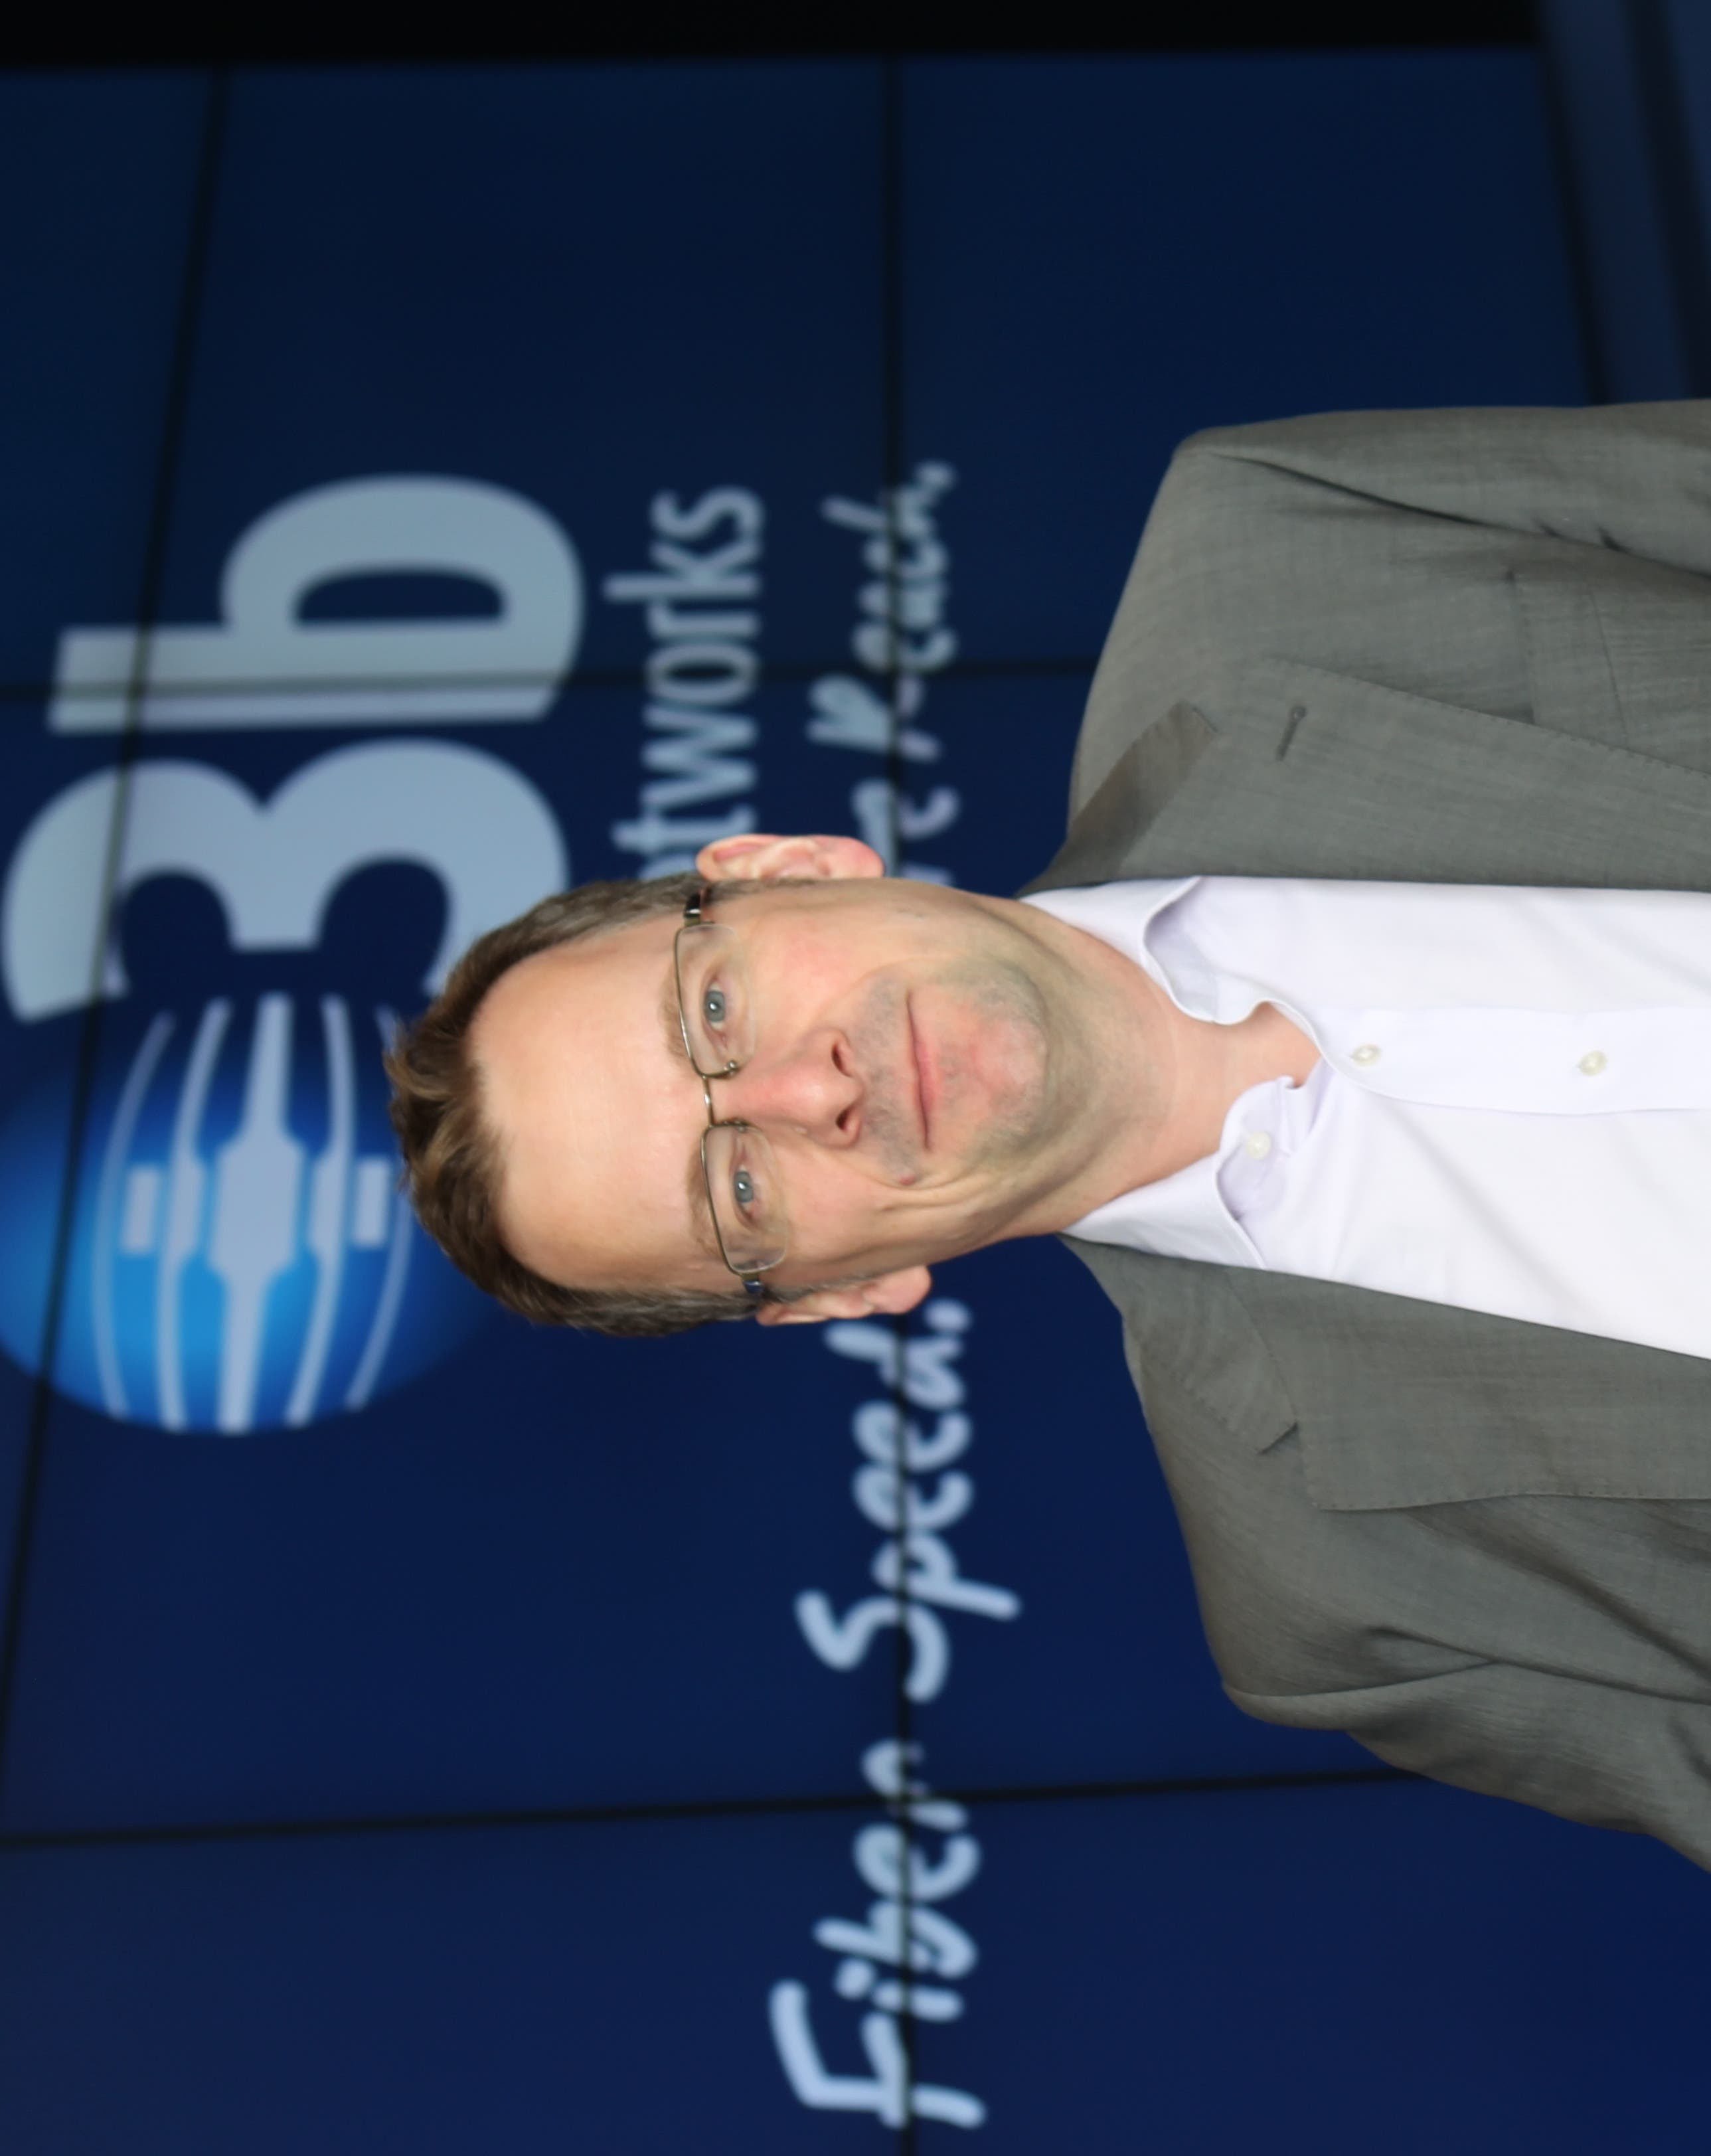 Steve Collar, Chief Executive of O3b Networks